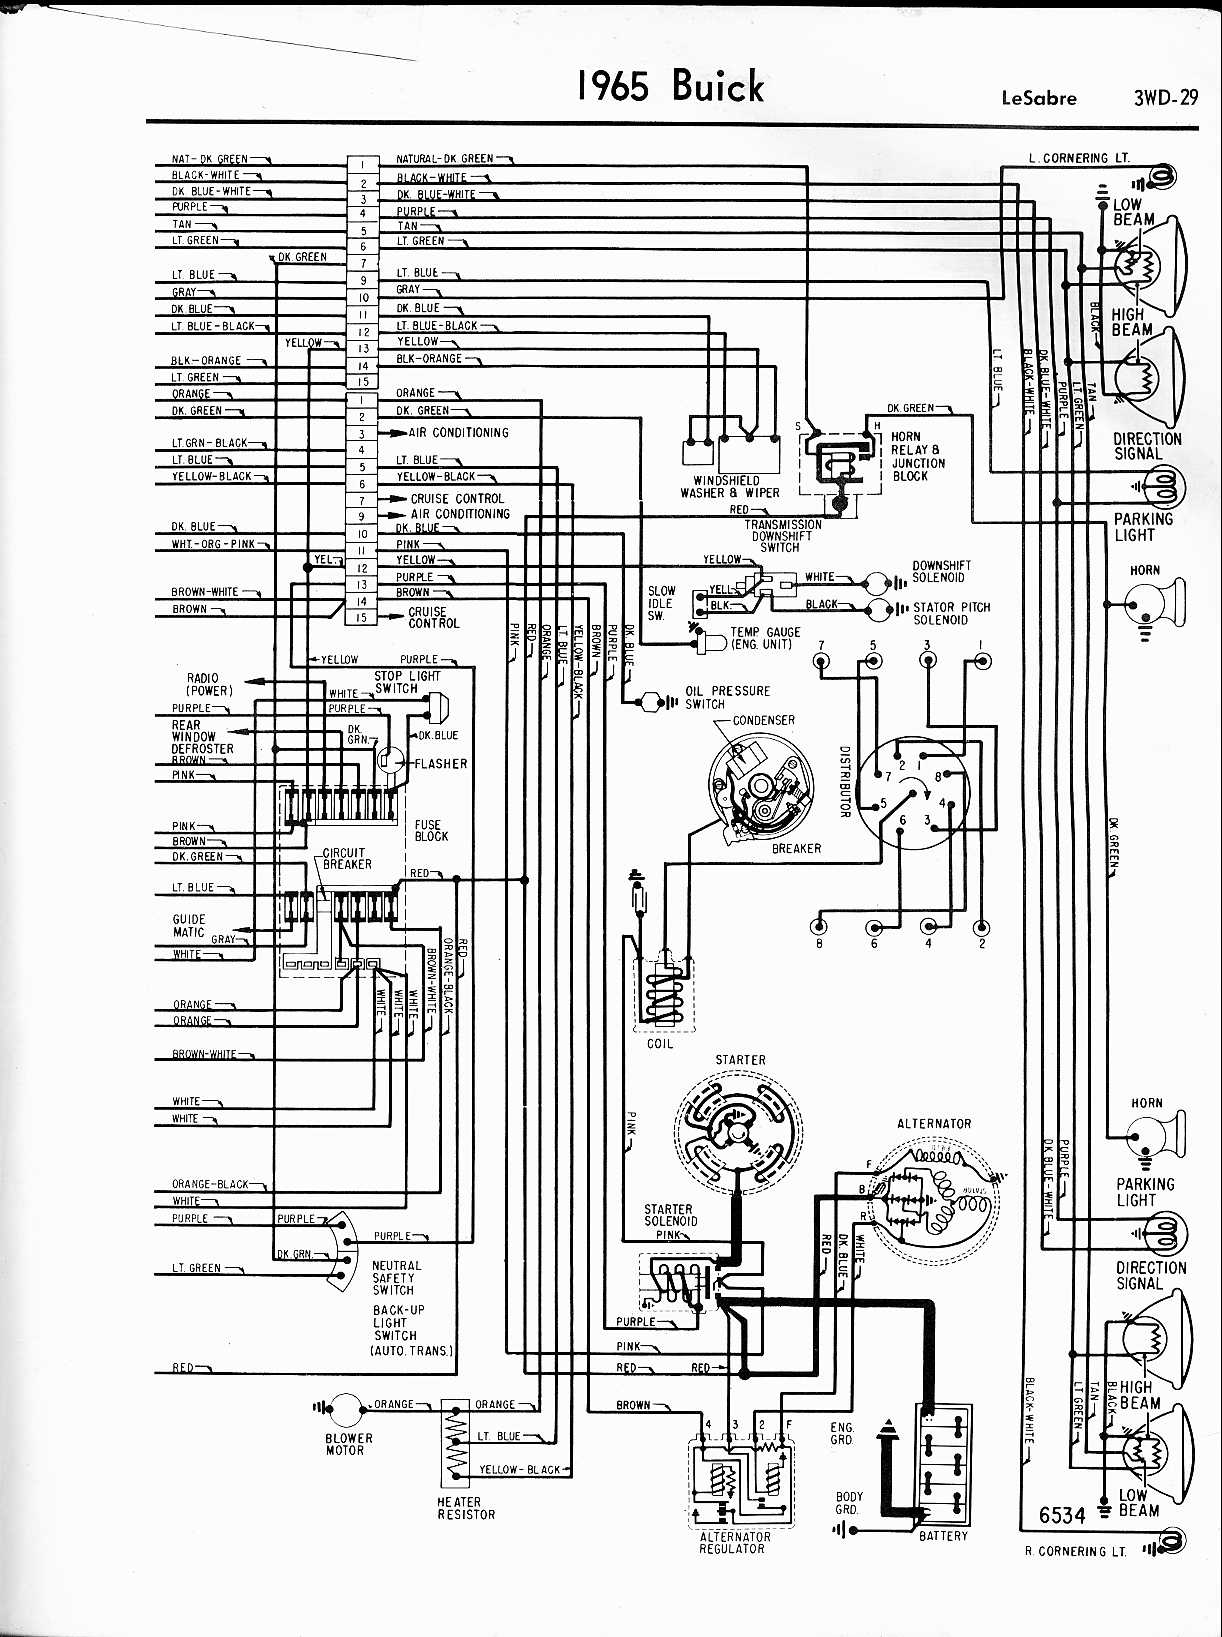 [SCHEMATICS_4CA]  Buick Alternator Wiring Diagram Protrak Gooseneck Wiring Diagram -  pump.salak.astrea-construction.fr | 1996 Ford Alternator Wiring Diagram |  | Begeboy Wiring Diagram Source - astrea-construction.fr